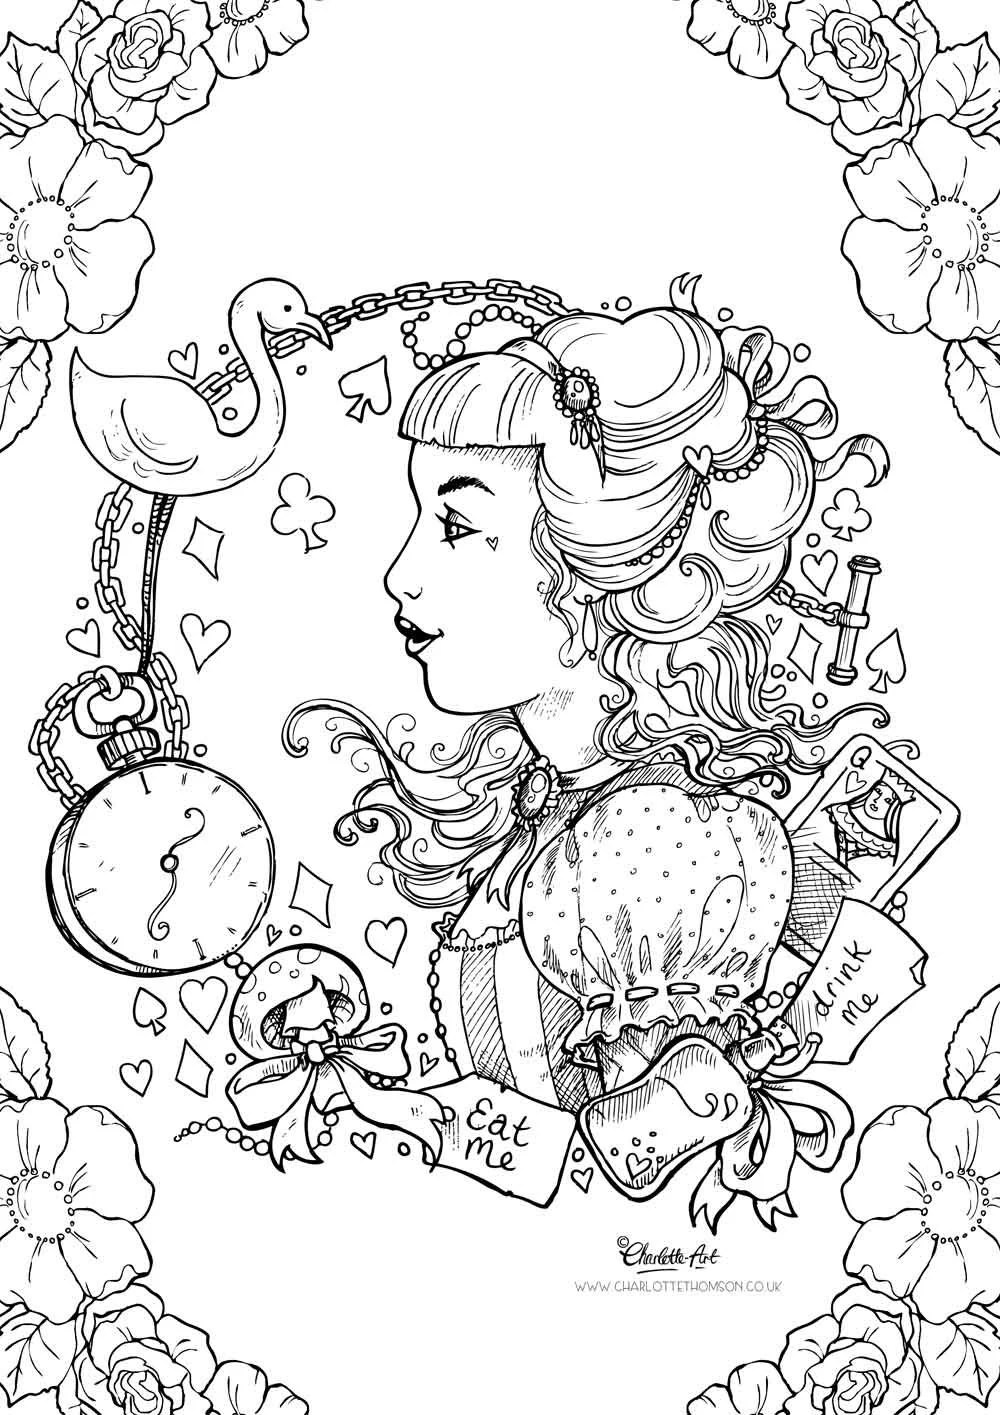 Adult Colouring Page. Alice in Wonderland by